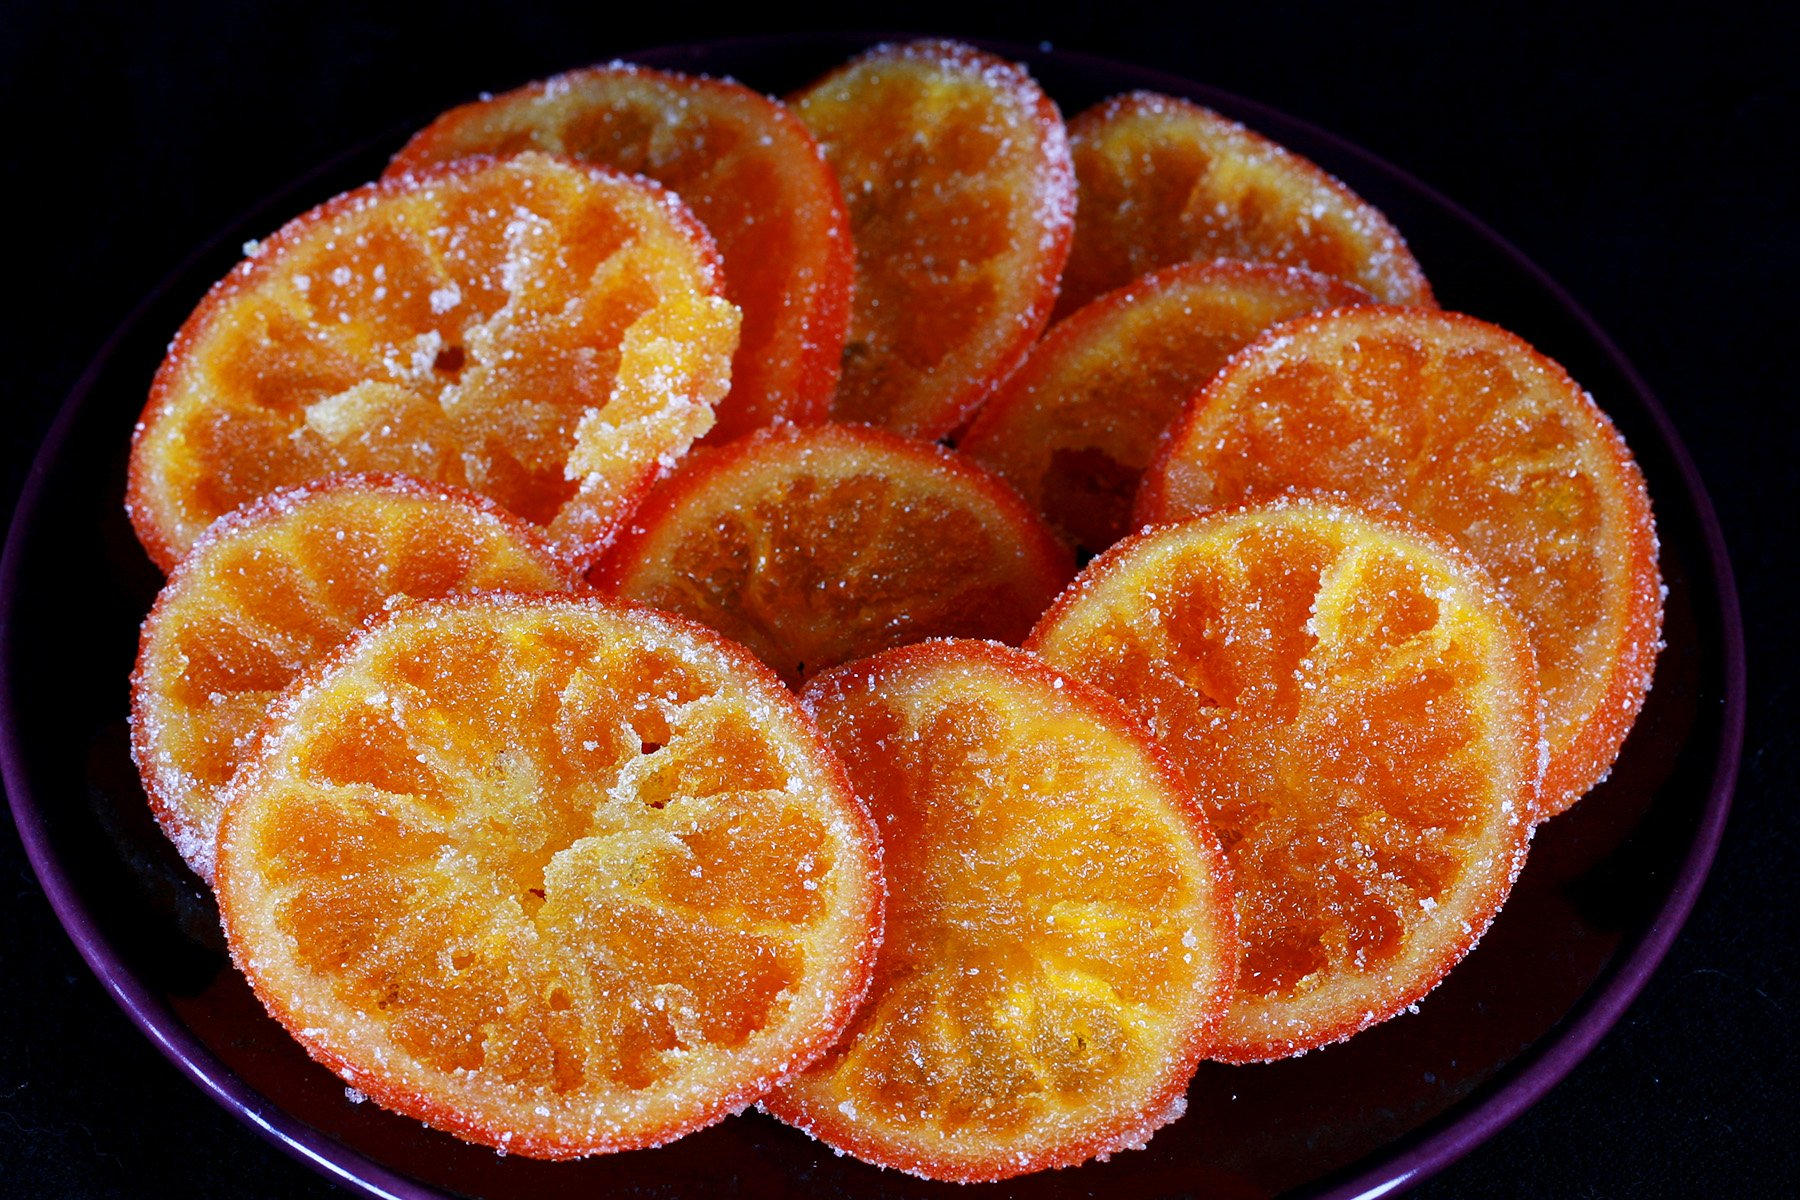 A small blue plate with slices of candied oranges spread out on it.